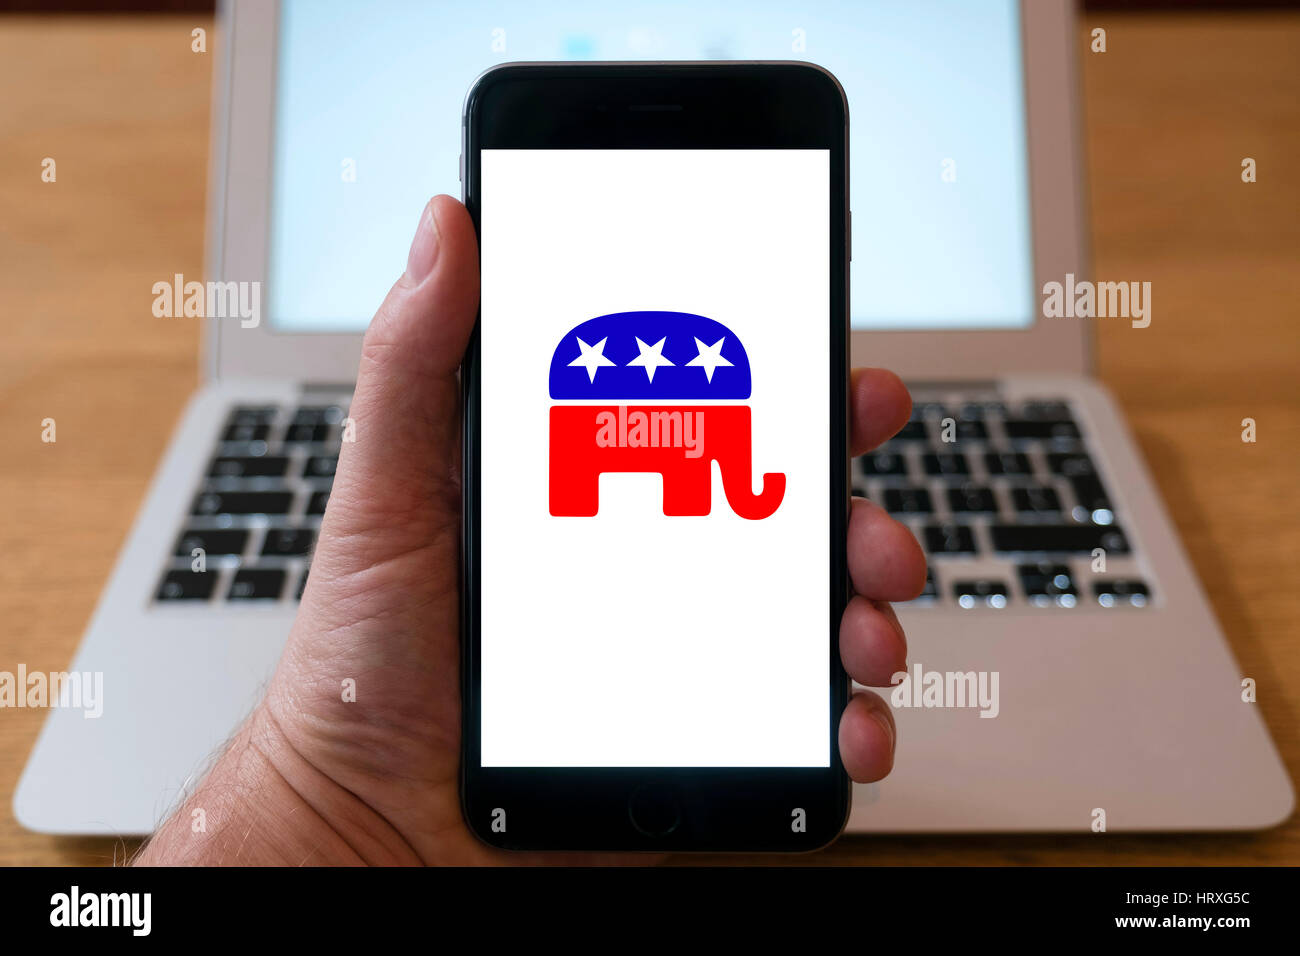 Republican political party logo on smart phone screen. - Stock Image